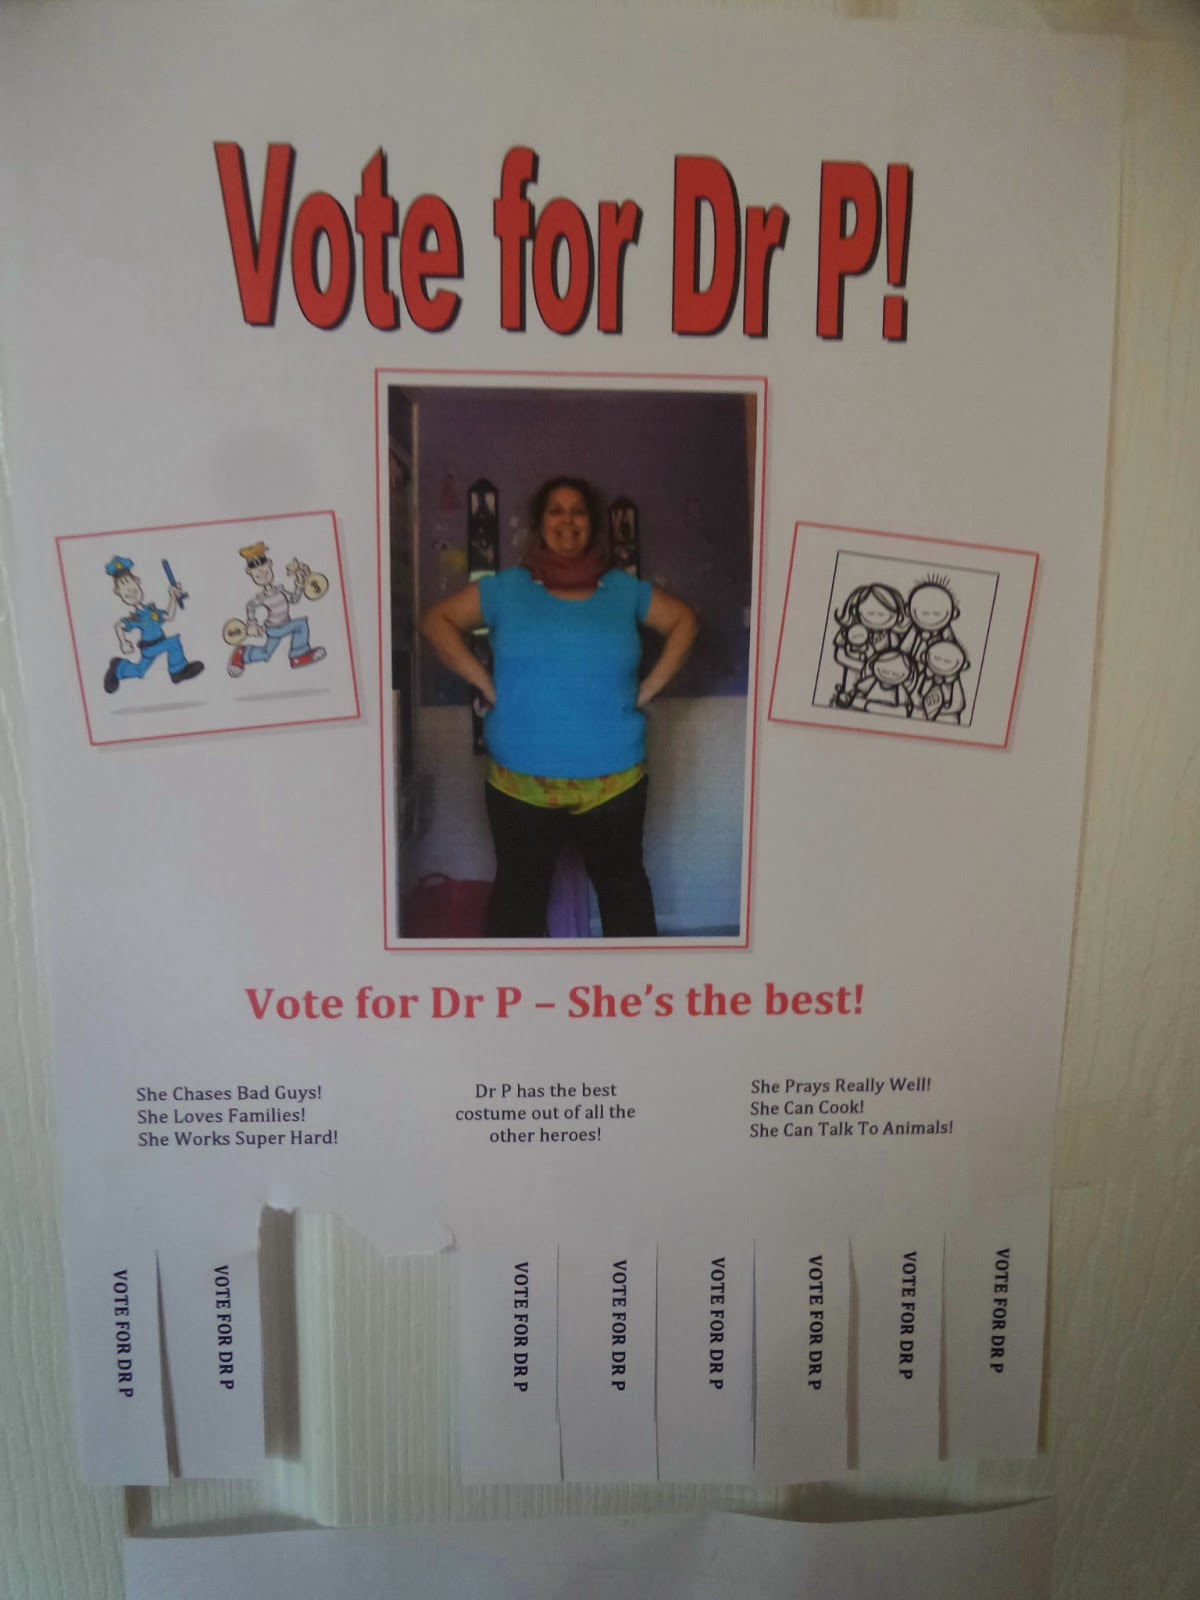 Vote for Dr P!